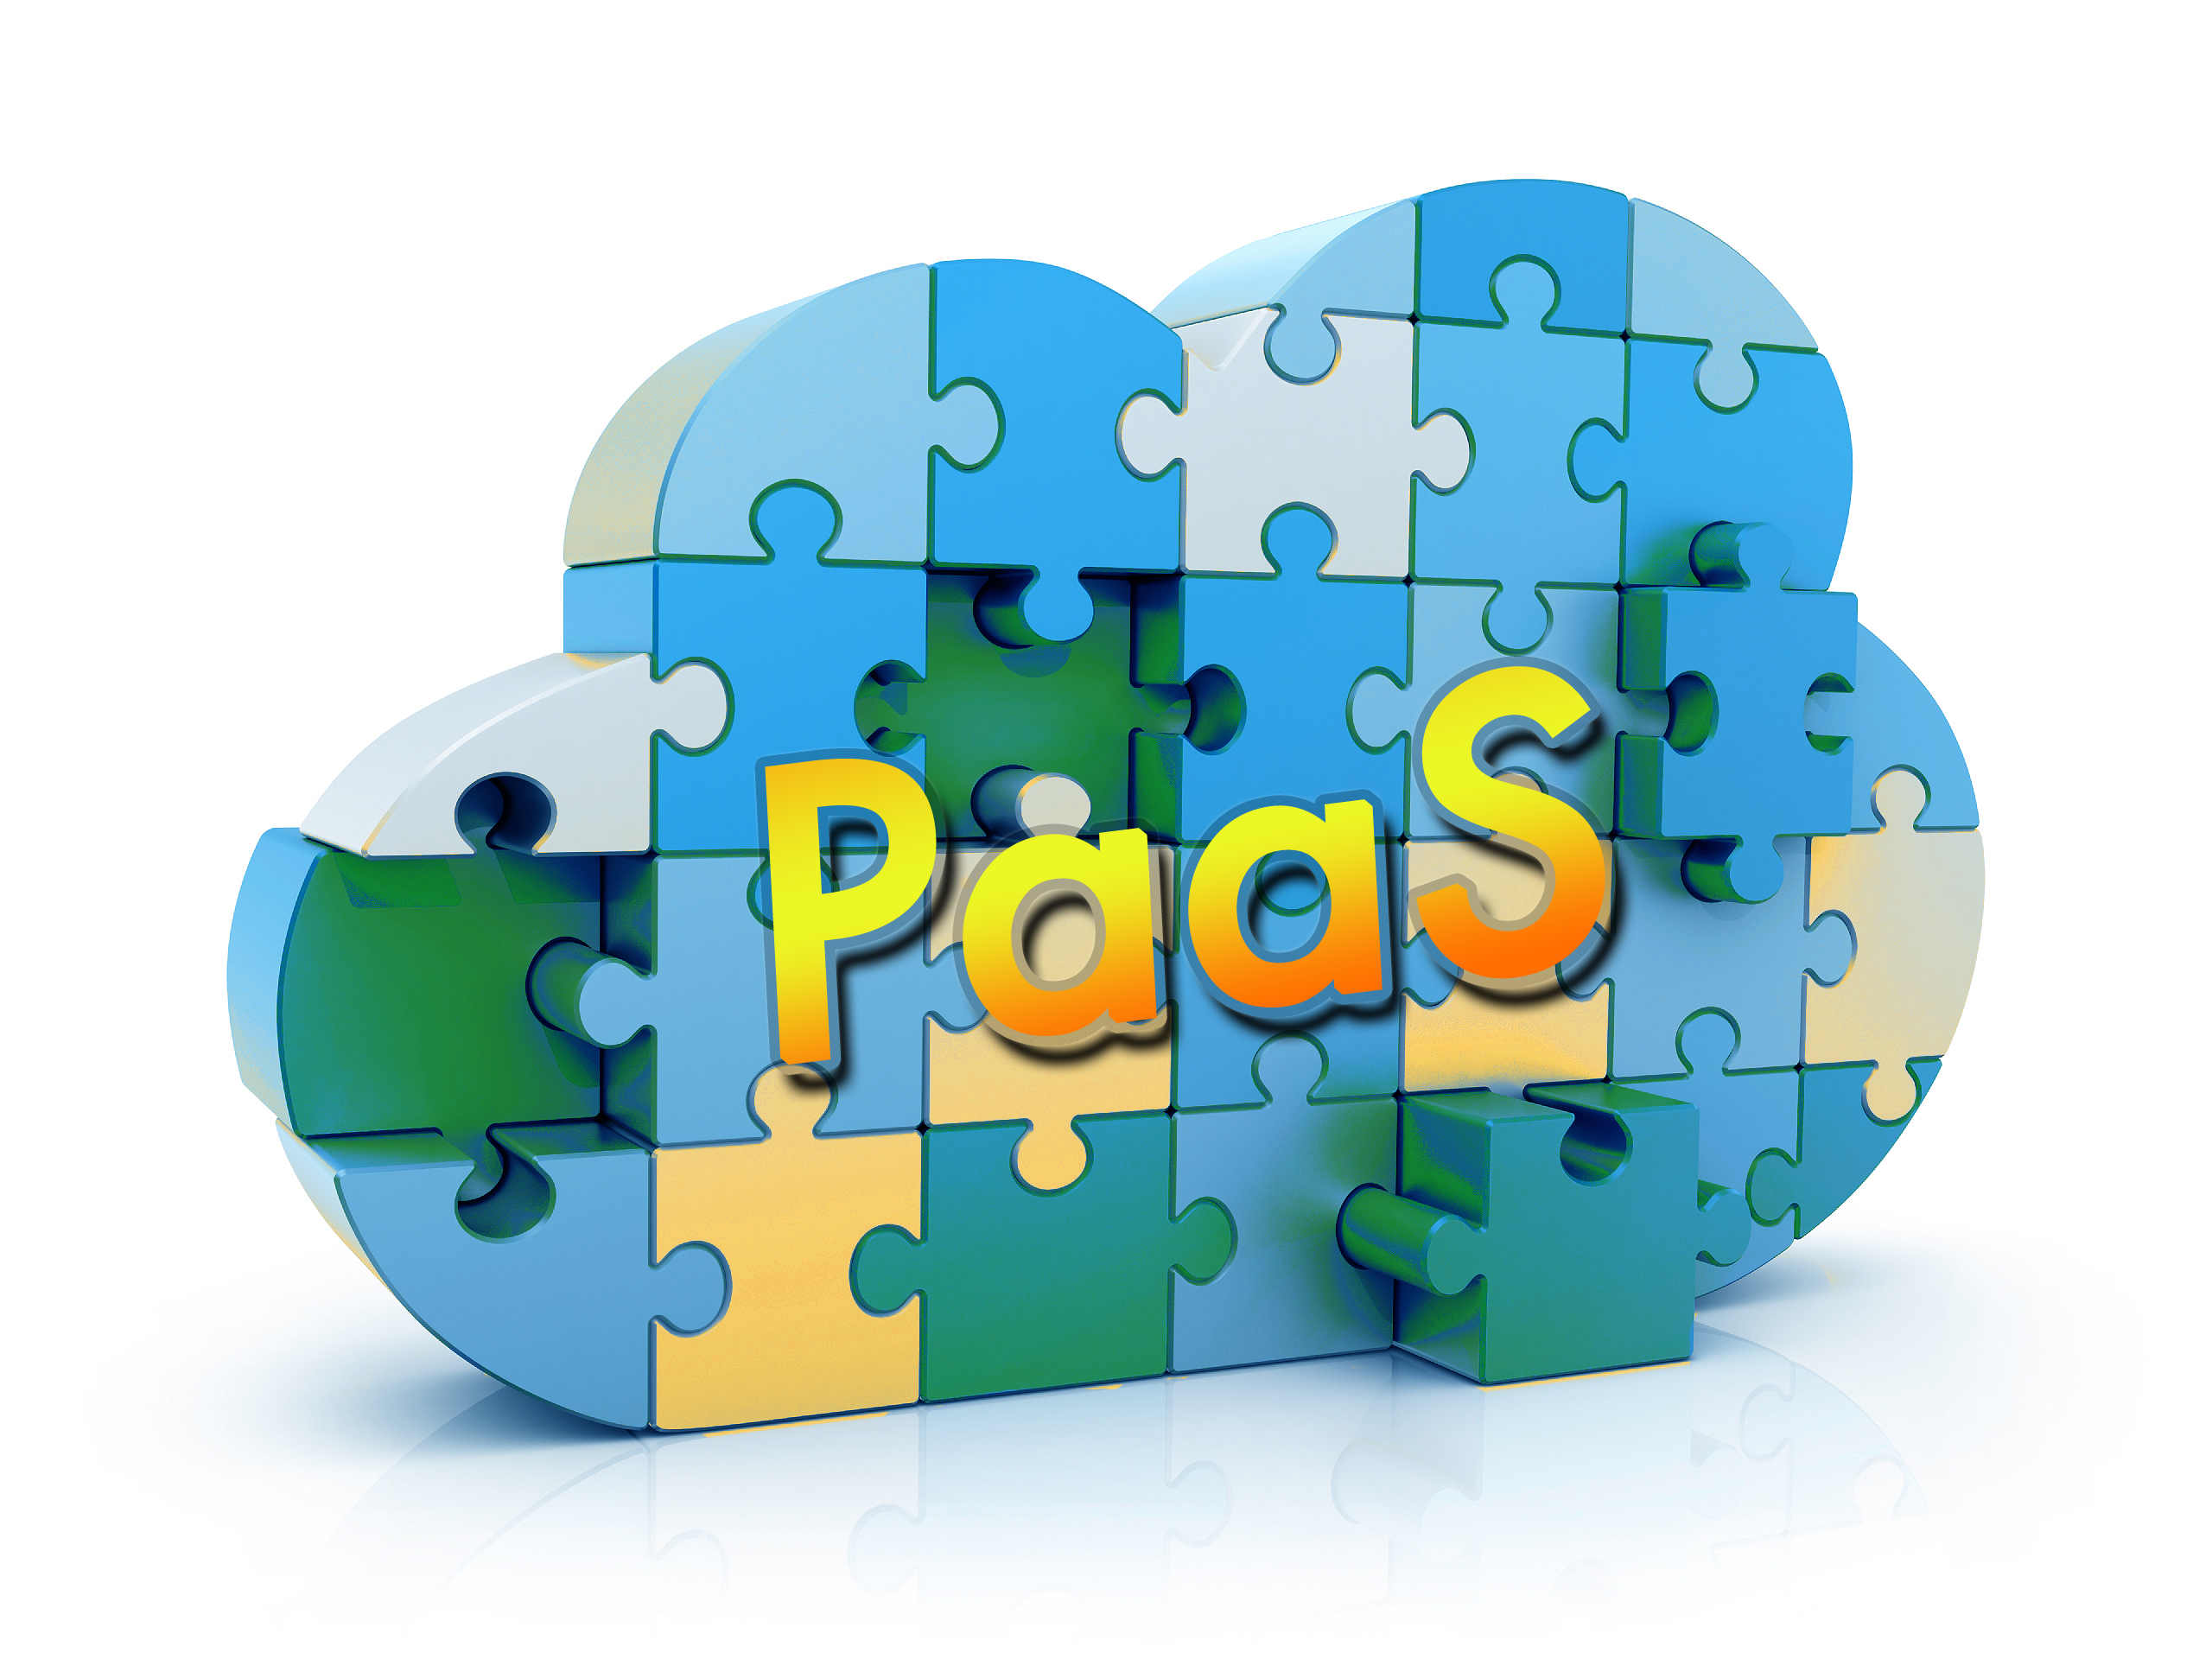 -2.2 PaaS  for Cloud